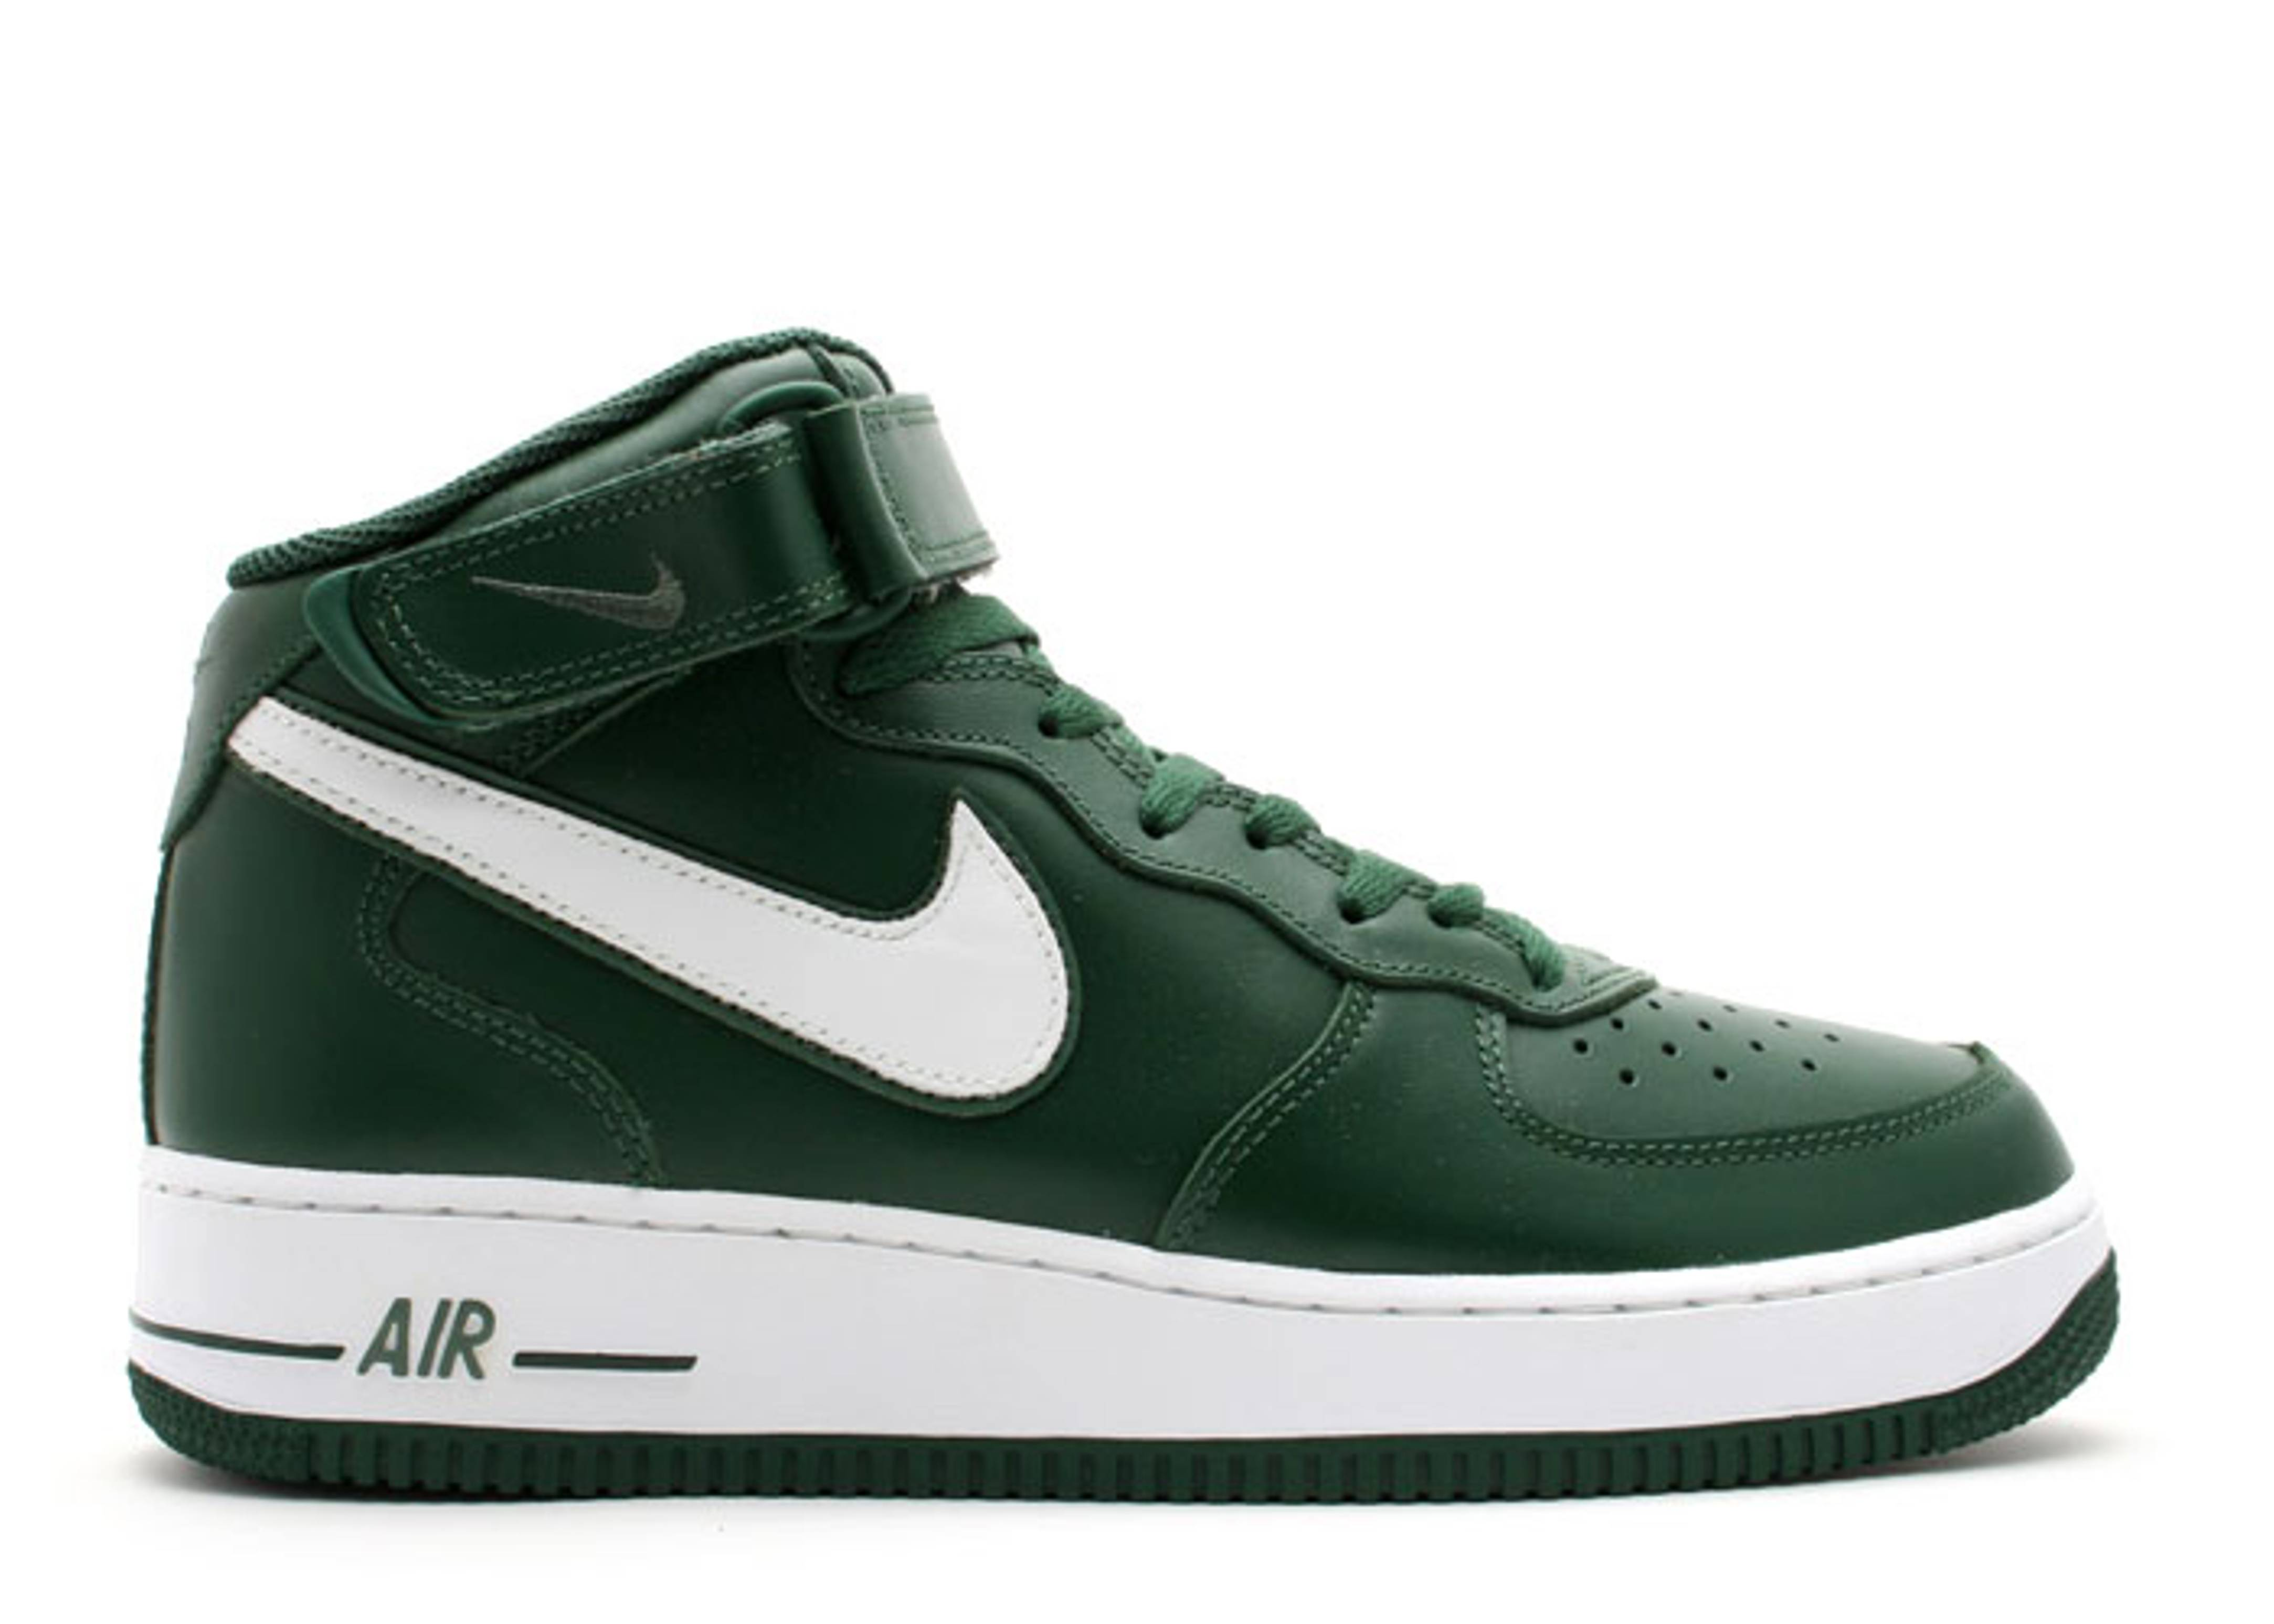 Air Force 1 Mid - Nike - 306352 311 - black forest/white-nori | Flight Club